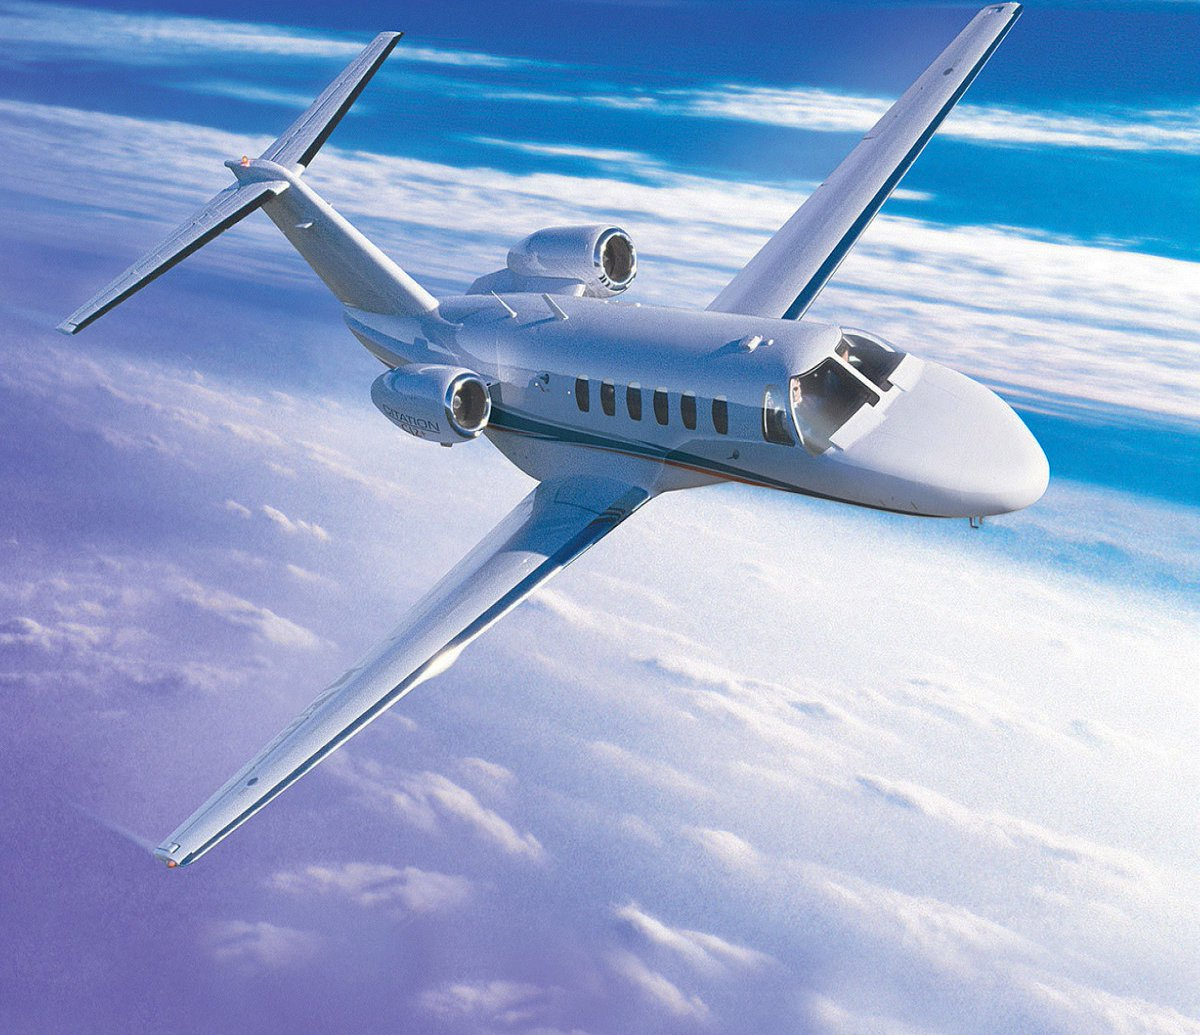 """""""This is the second time we've used the service of Aero &amp; Marine Tax Professionals""""  http:// ow.ly/Bit030egax4  &nbsp;   #cessna #privatejet #aviation<br>http://pic.twitter.com/WjihYBX4mo"""